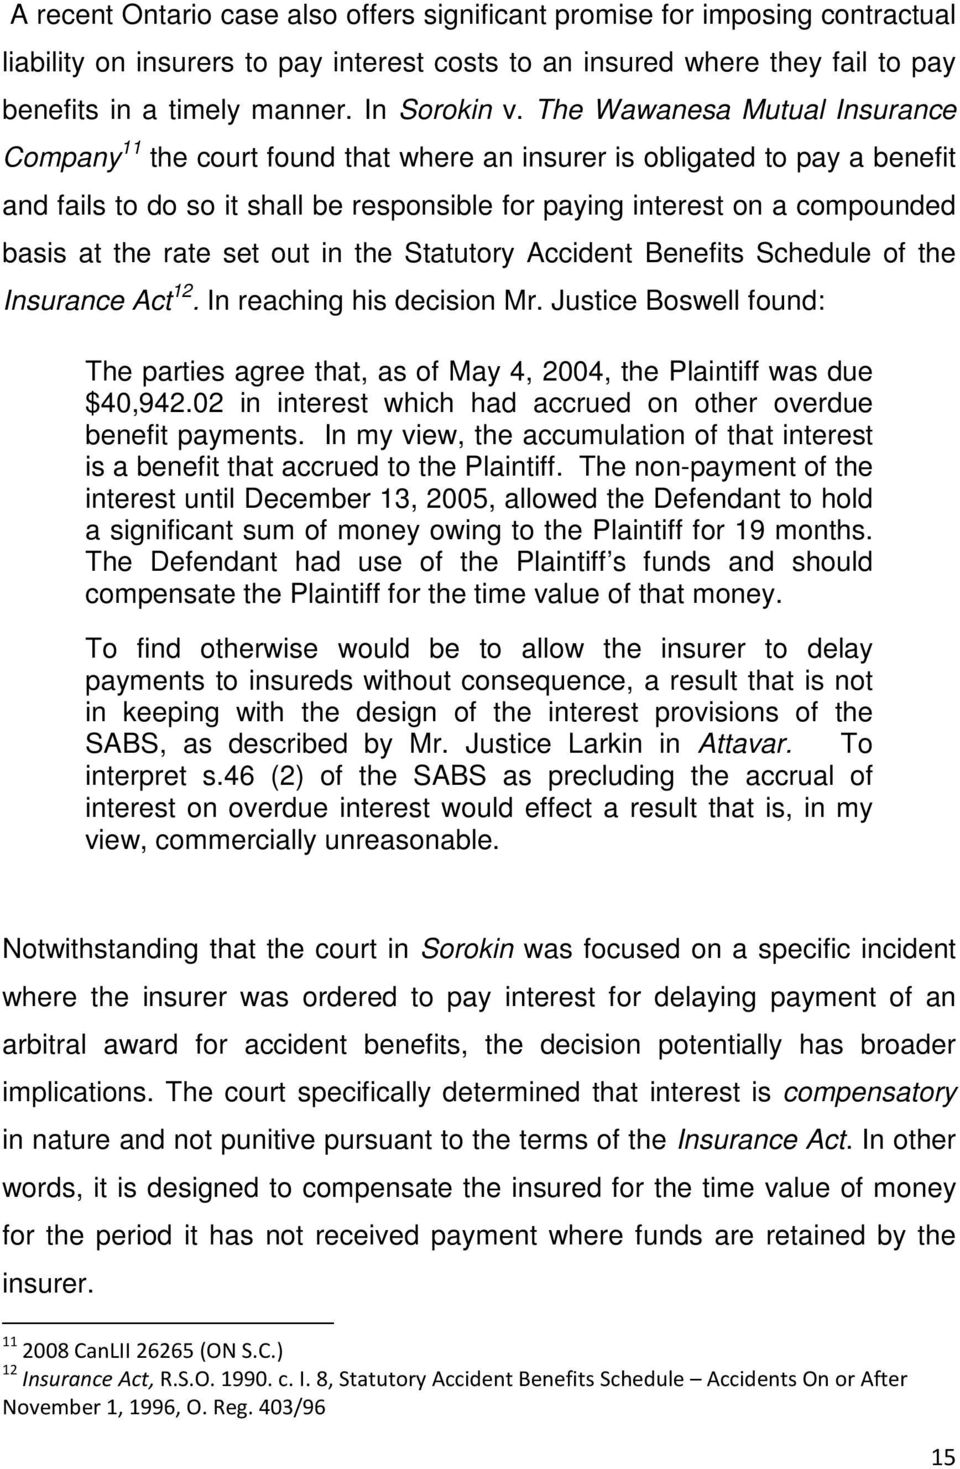 The Wawanesa Mutual Insurance Company 11 the court found that where an insurer is obligated to pay a benefit and fails to do so it shall be responsible for paying interest on a compounded basis at